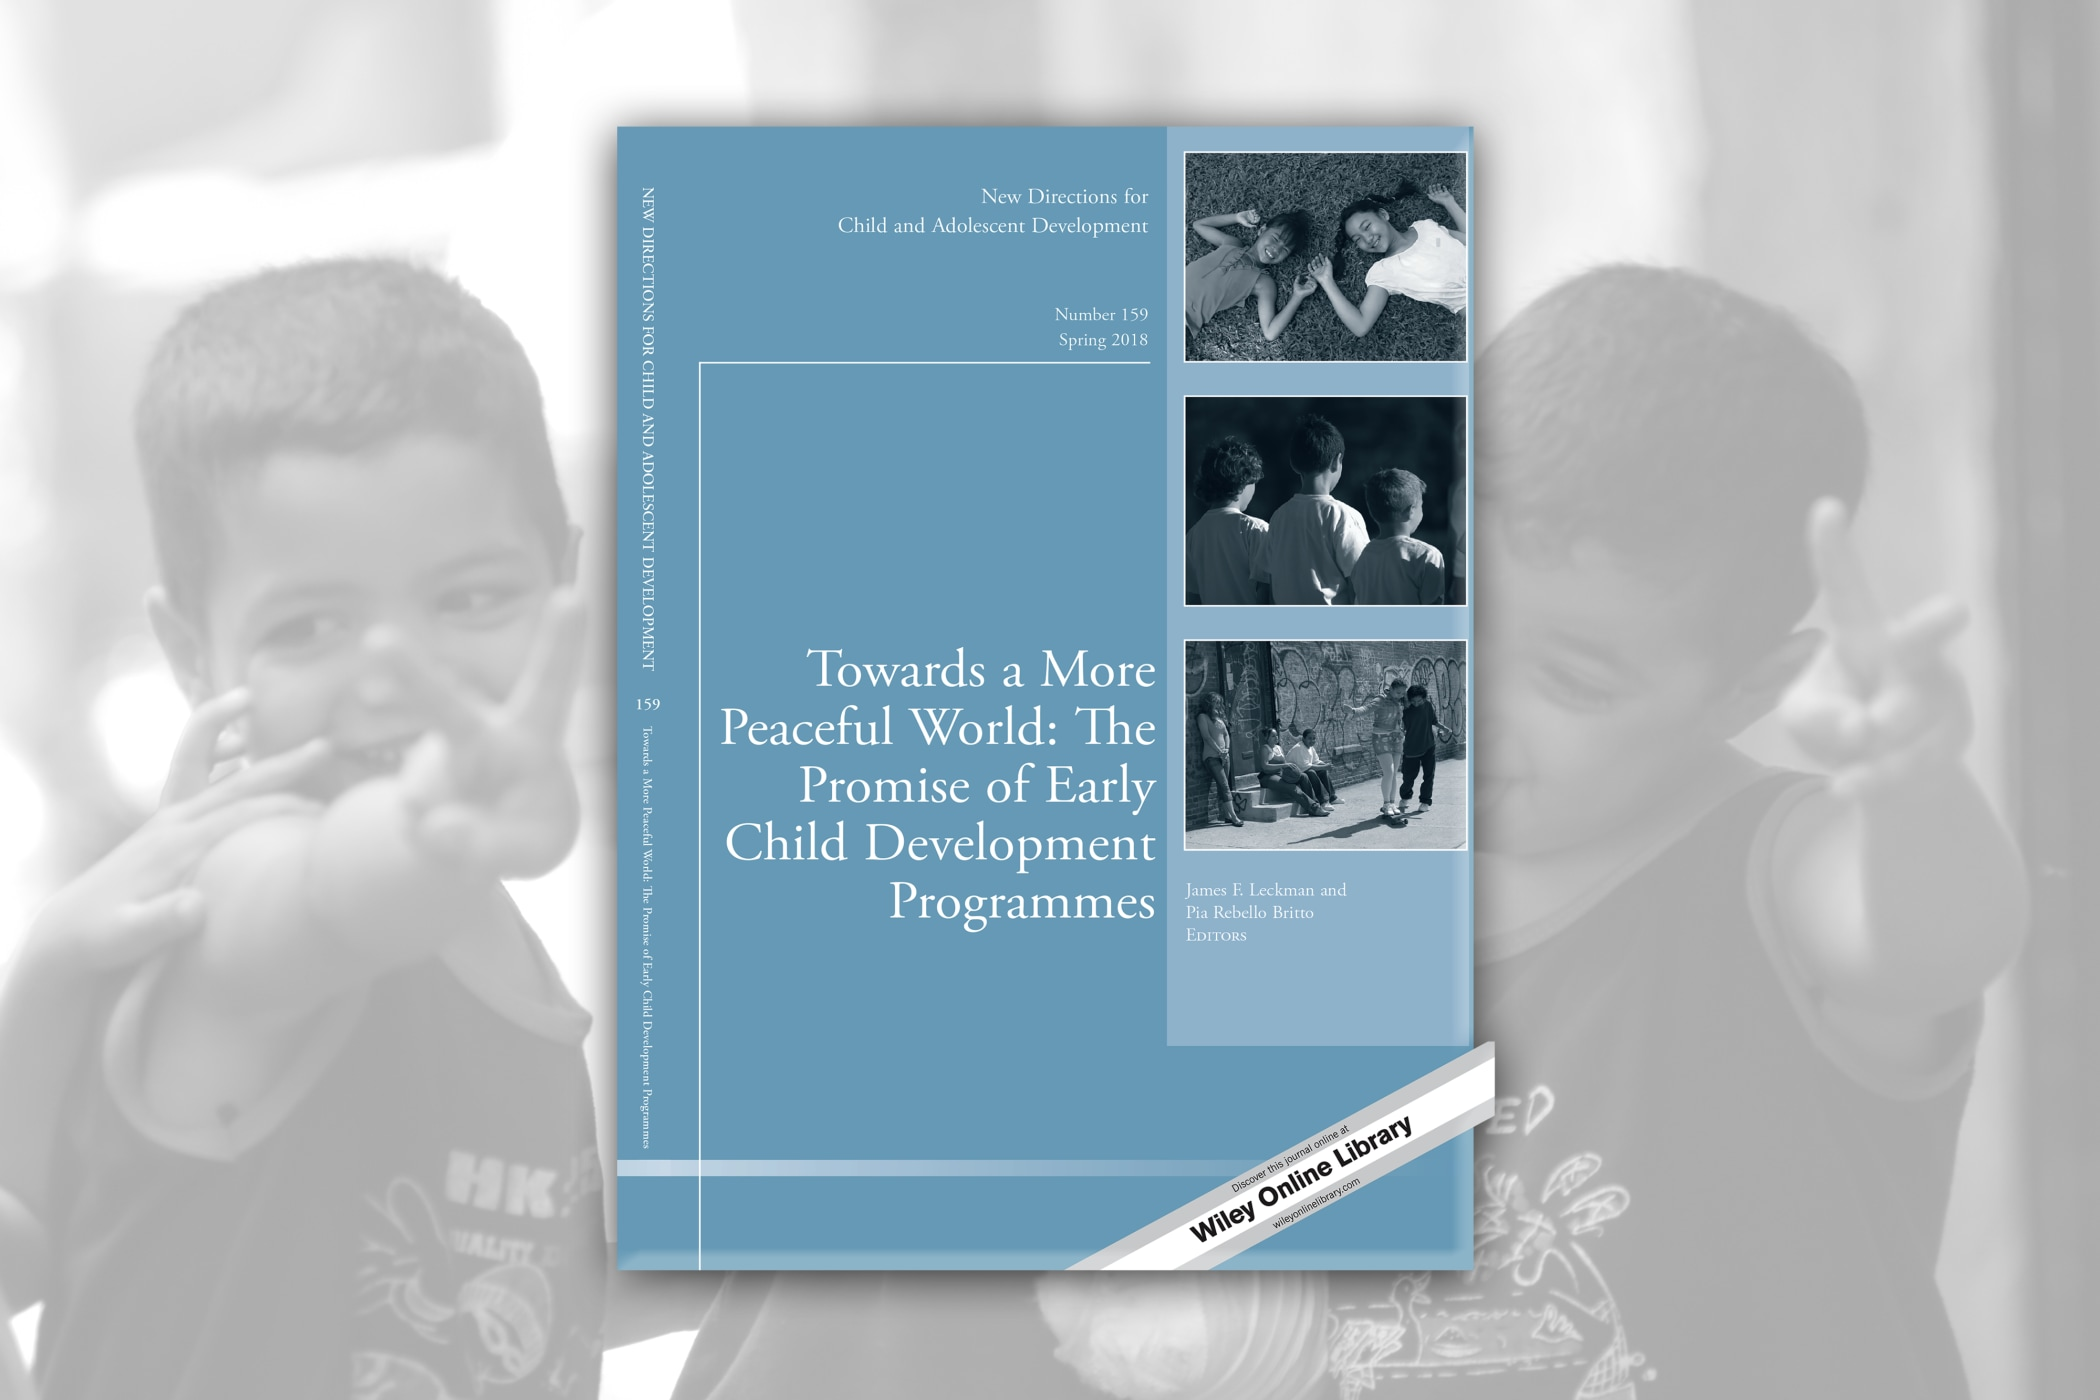 Towards a More Peaceful World: The Promise of Early Child Development Programmes